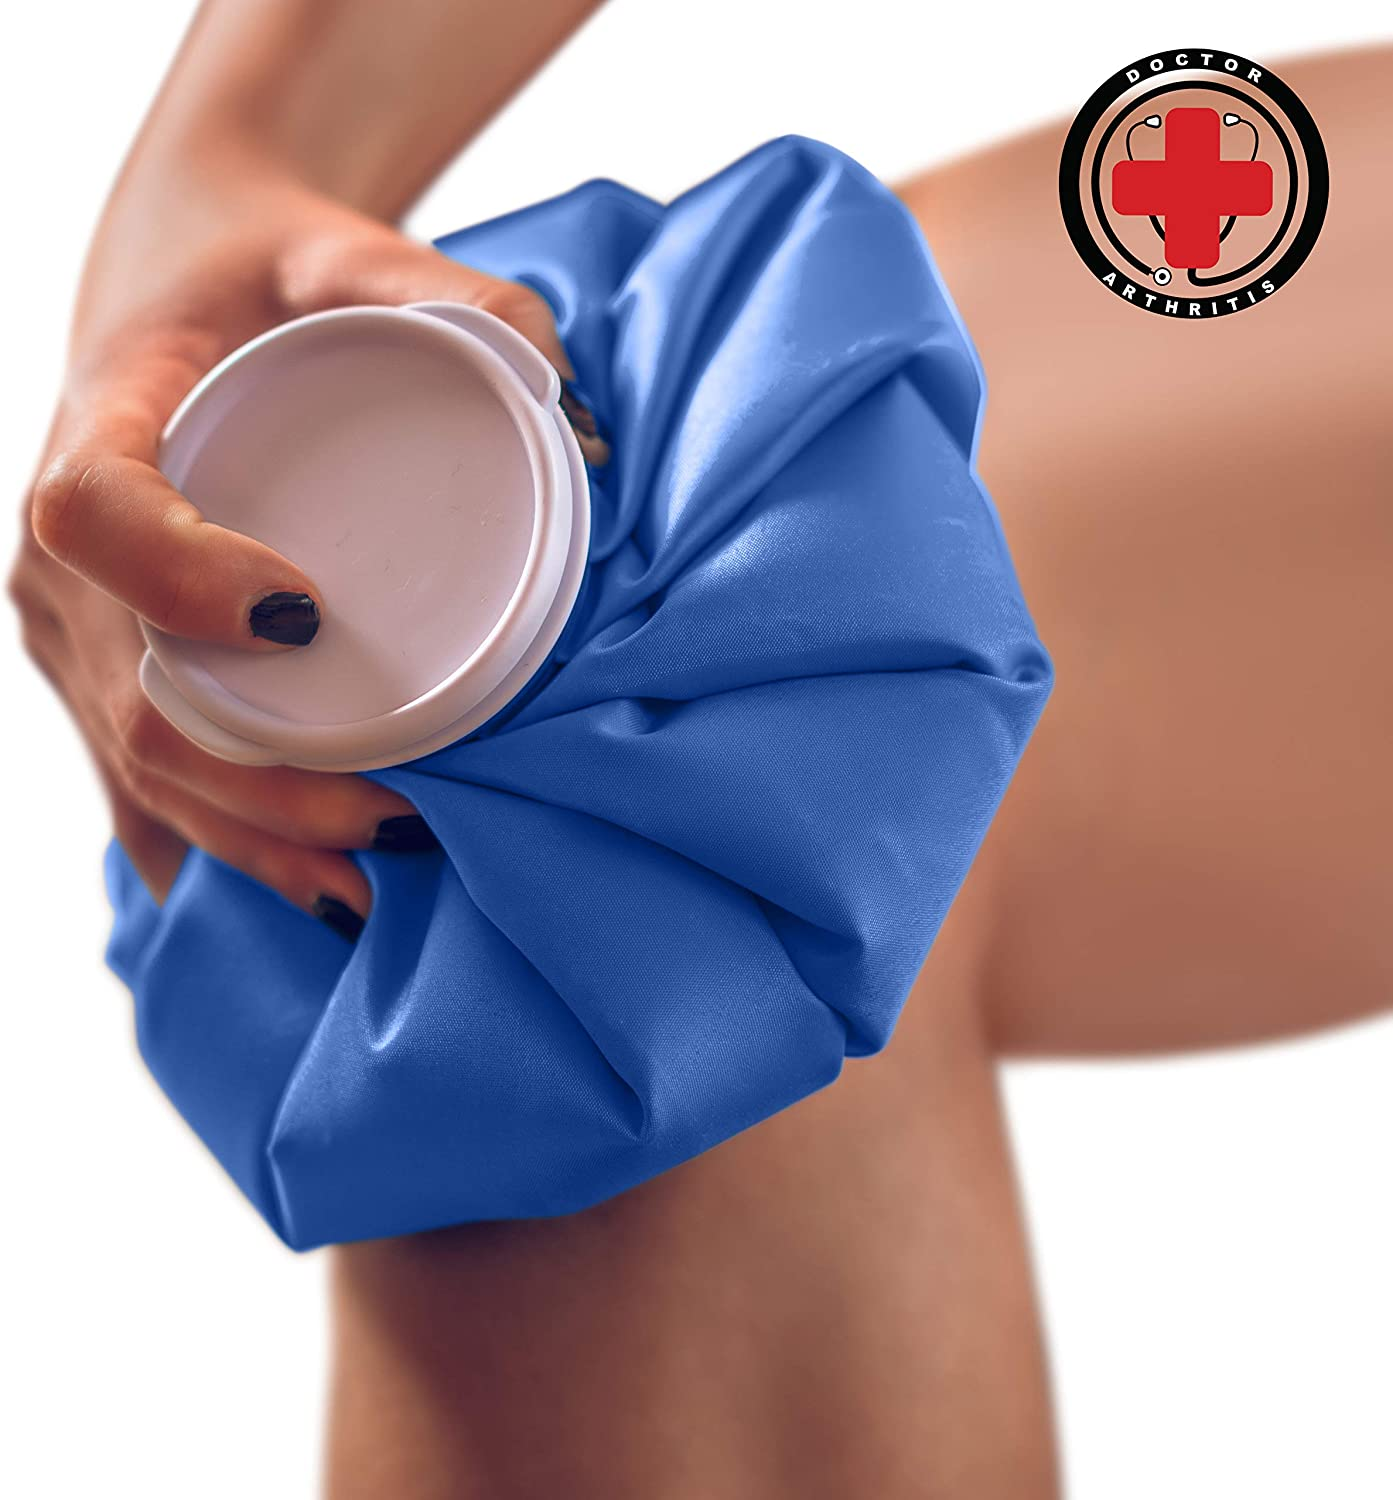 """Doctor Developed Hot and Cold Pack/Ice Bag/Ice Pack/Compress [Single] - Re-useable and Waterproof with Spill-Proof caps and Durable, Anti-Leak Materials (Medium - 9"""")"""